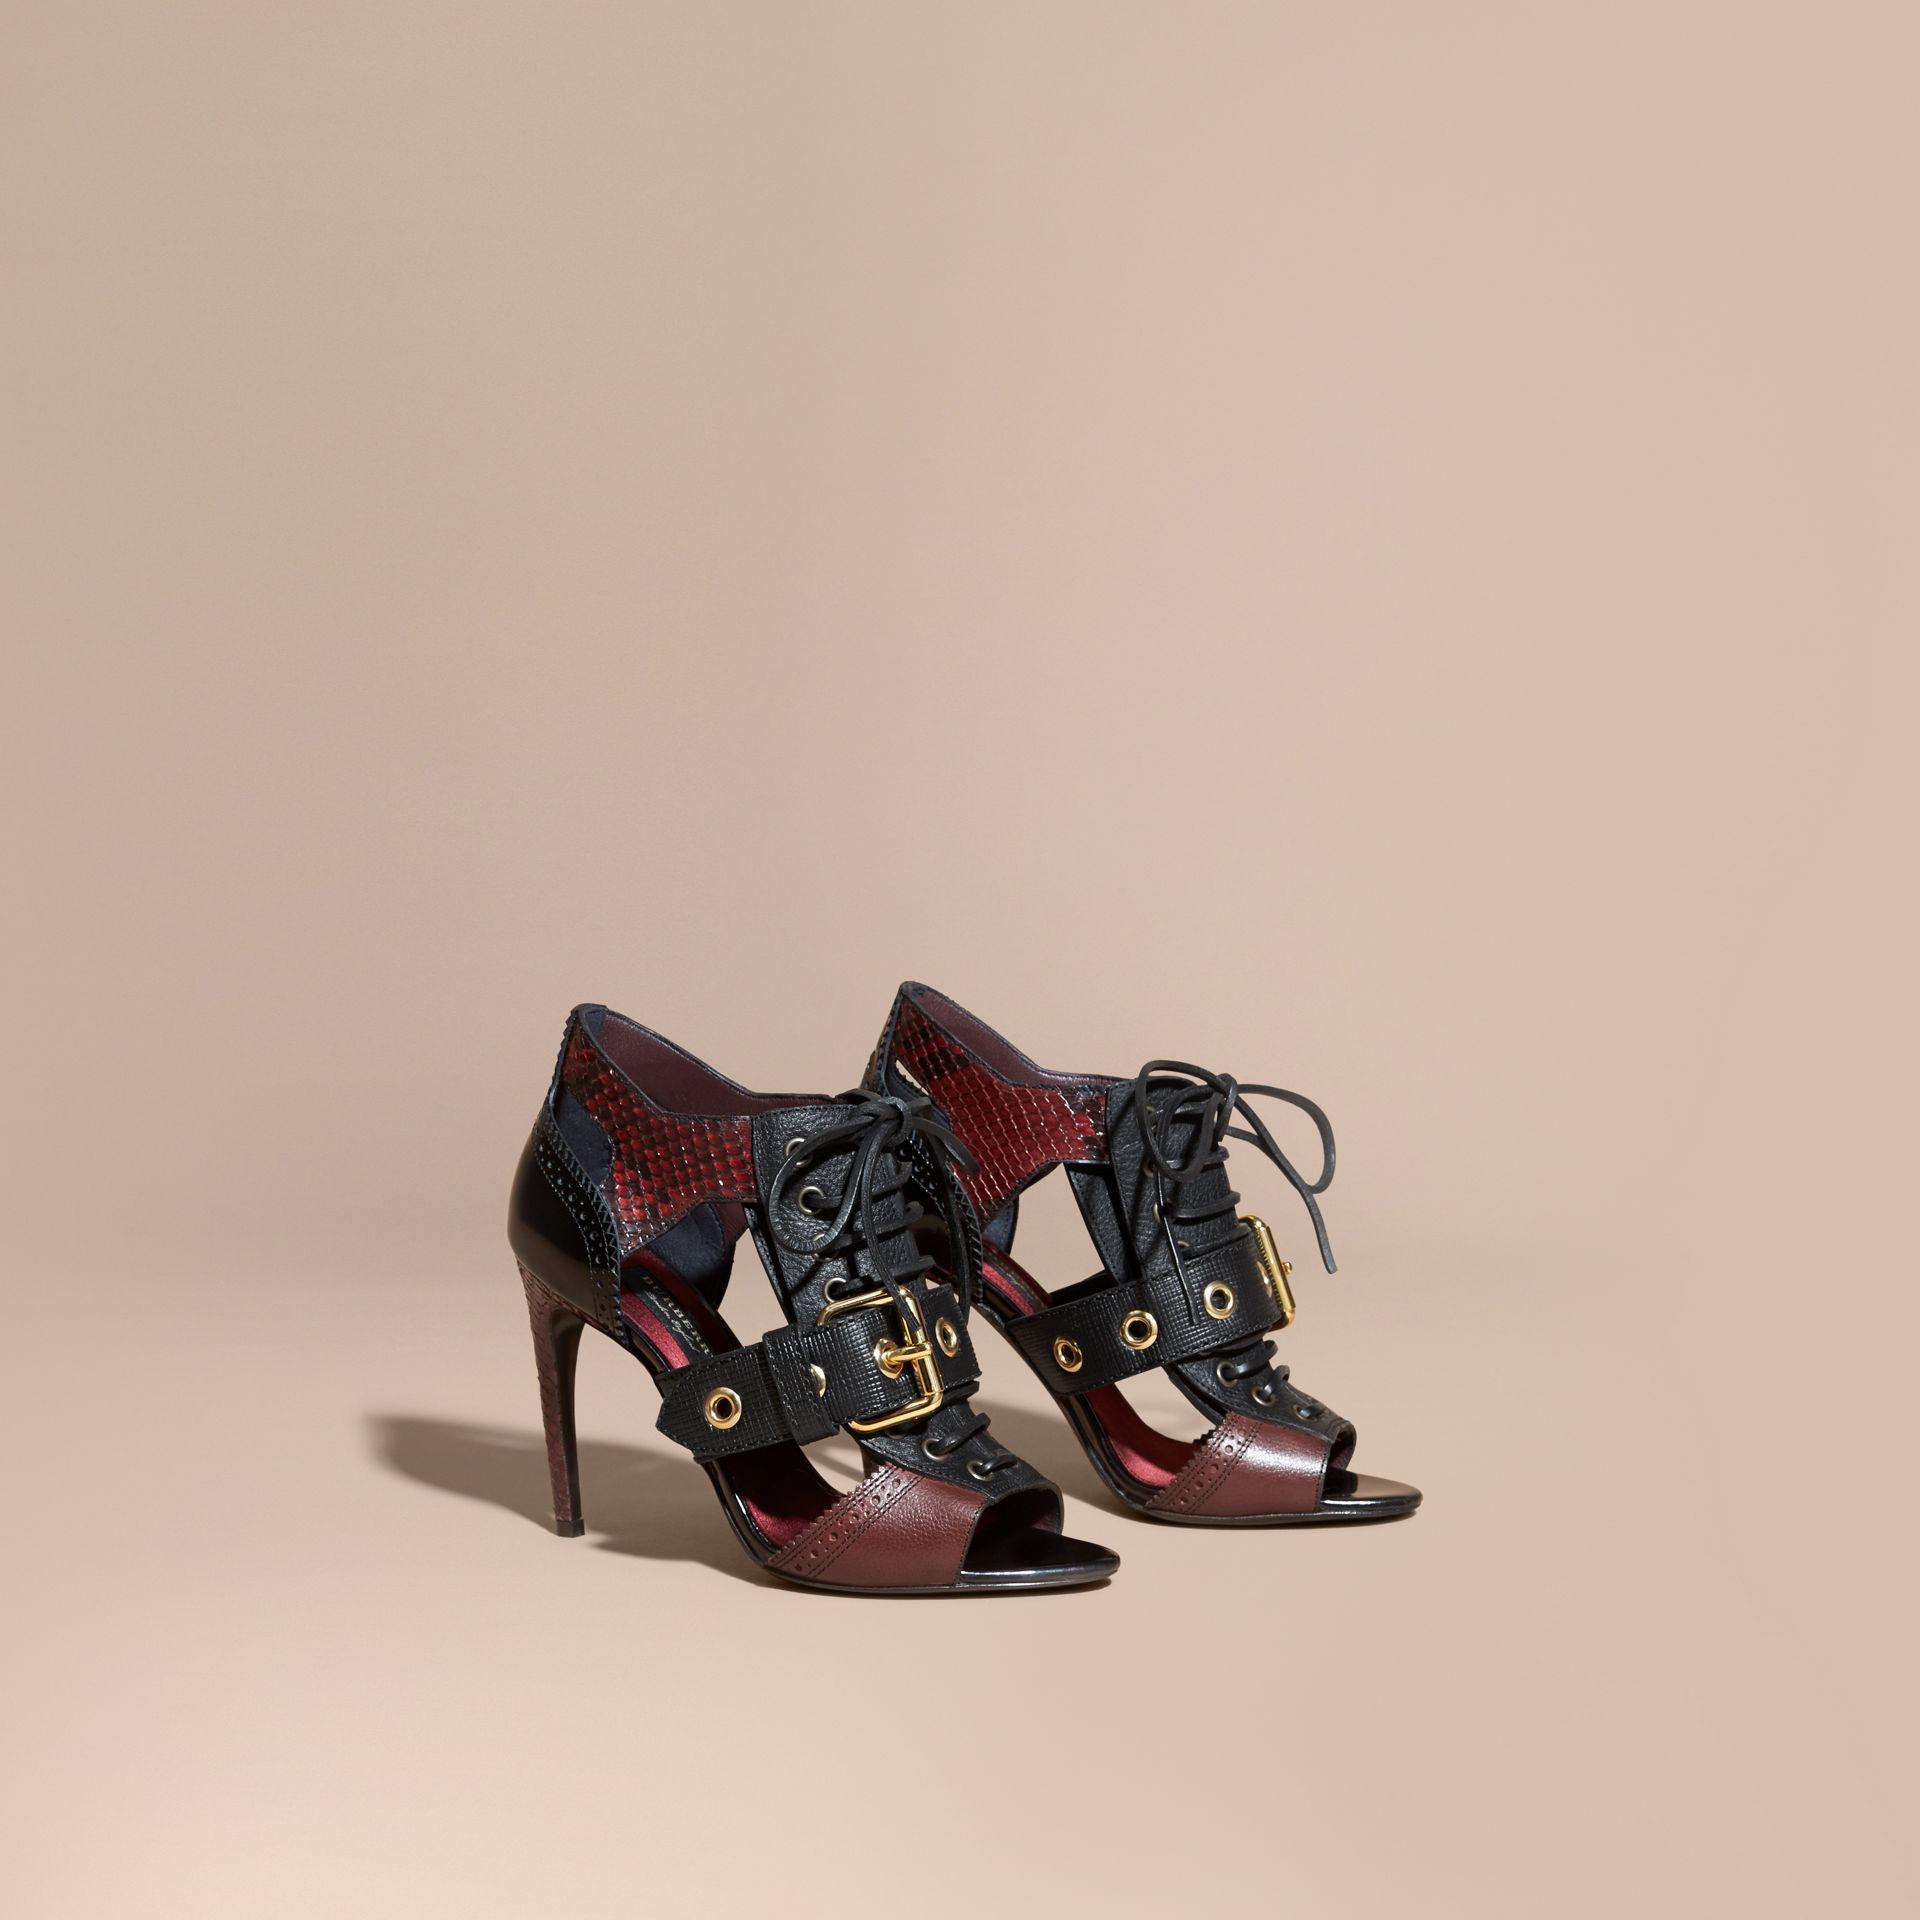 Bordeaux Buckle Detail Leather and Snakeskin Cut-out Ankle Boots Bordeaux - gallery image 1